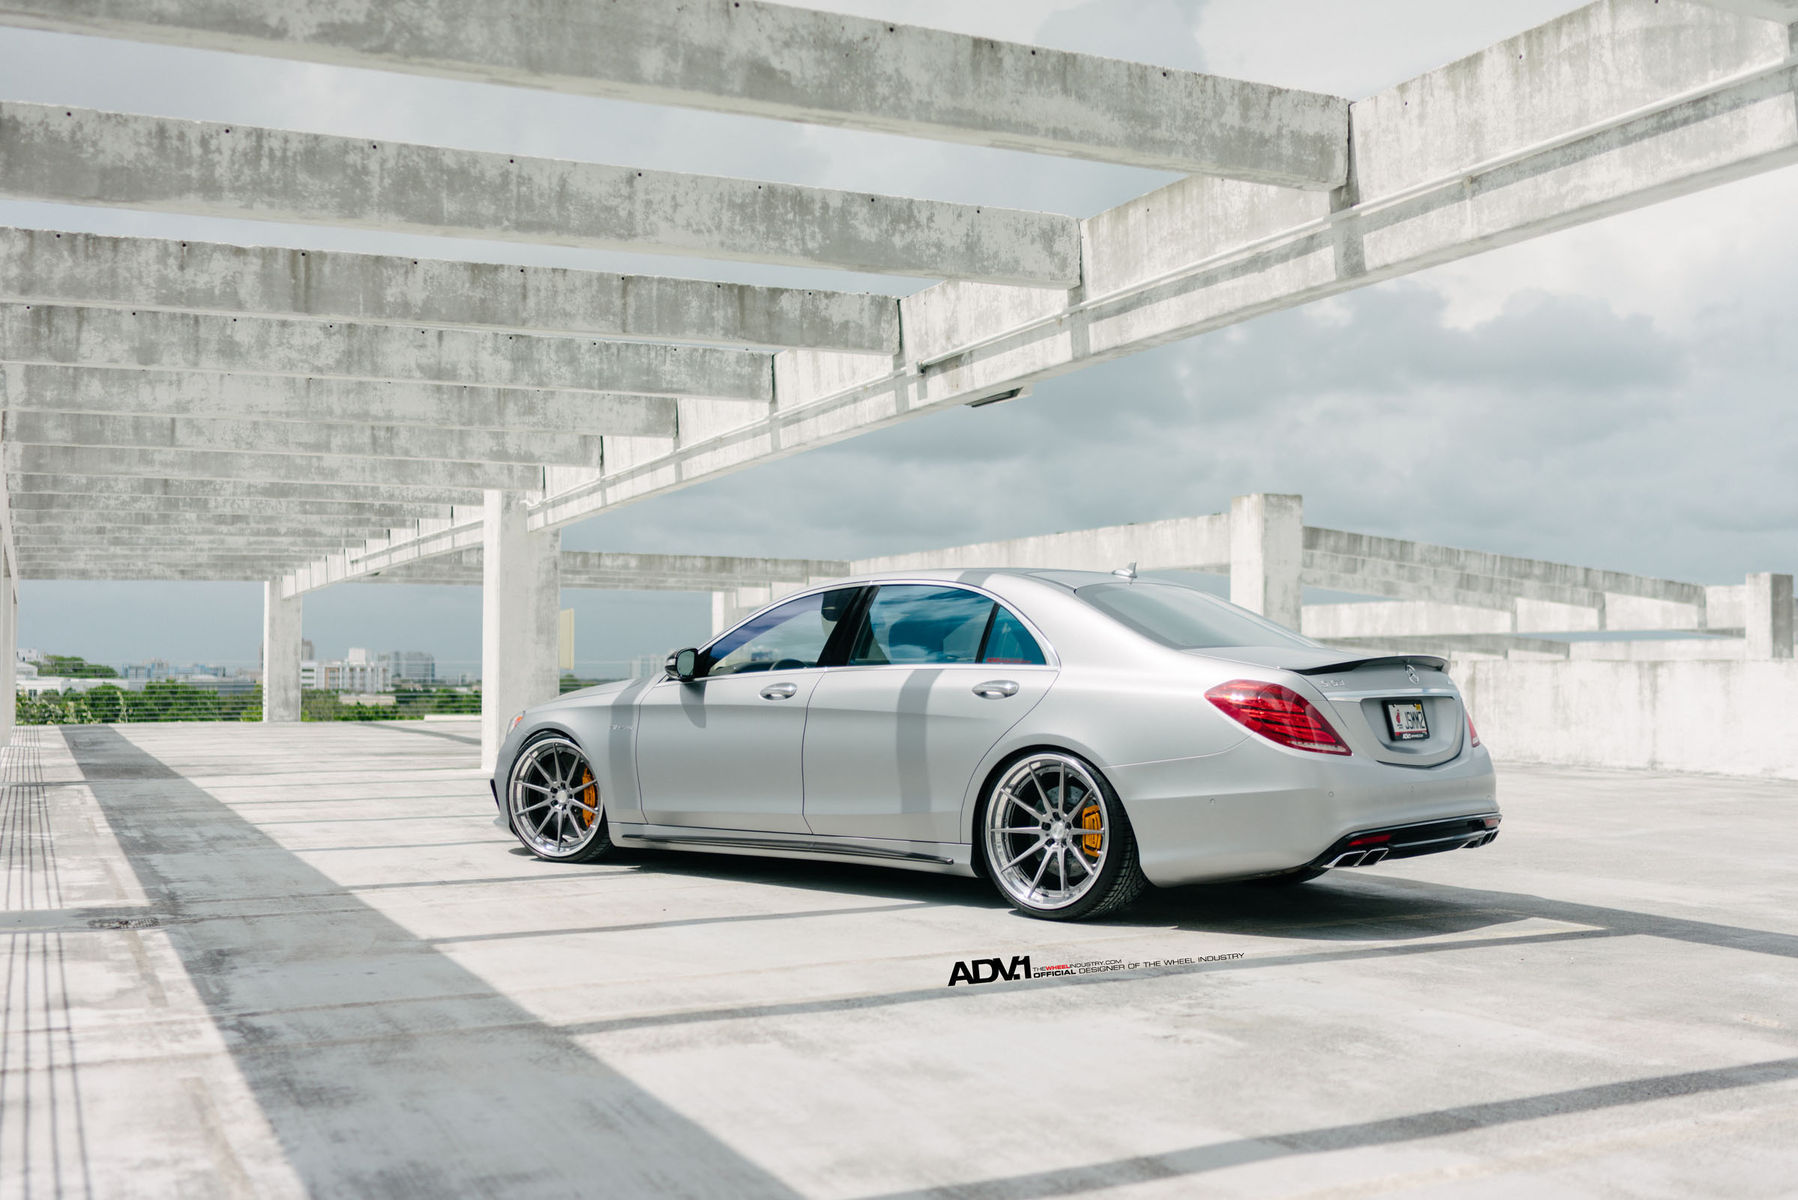 2015 Mercedes-Benz S-Class | Mercedes Benz S63 AMG Sedan